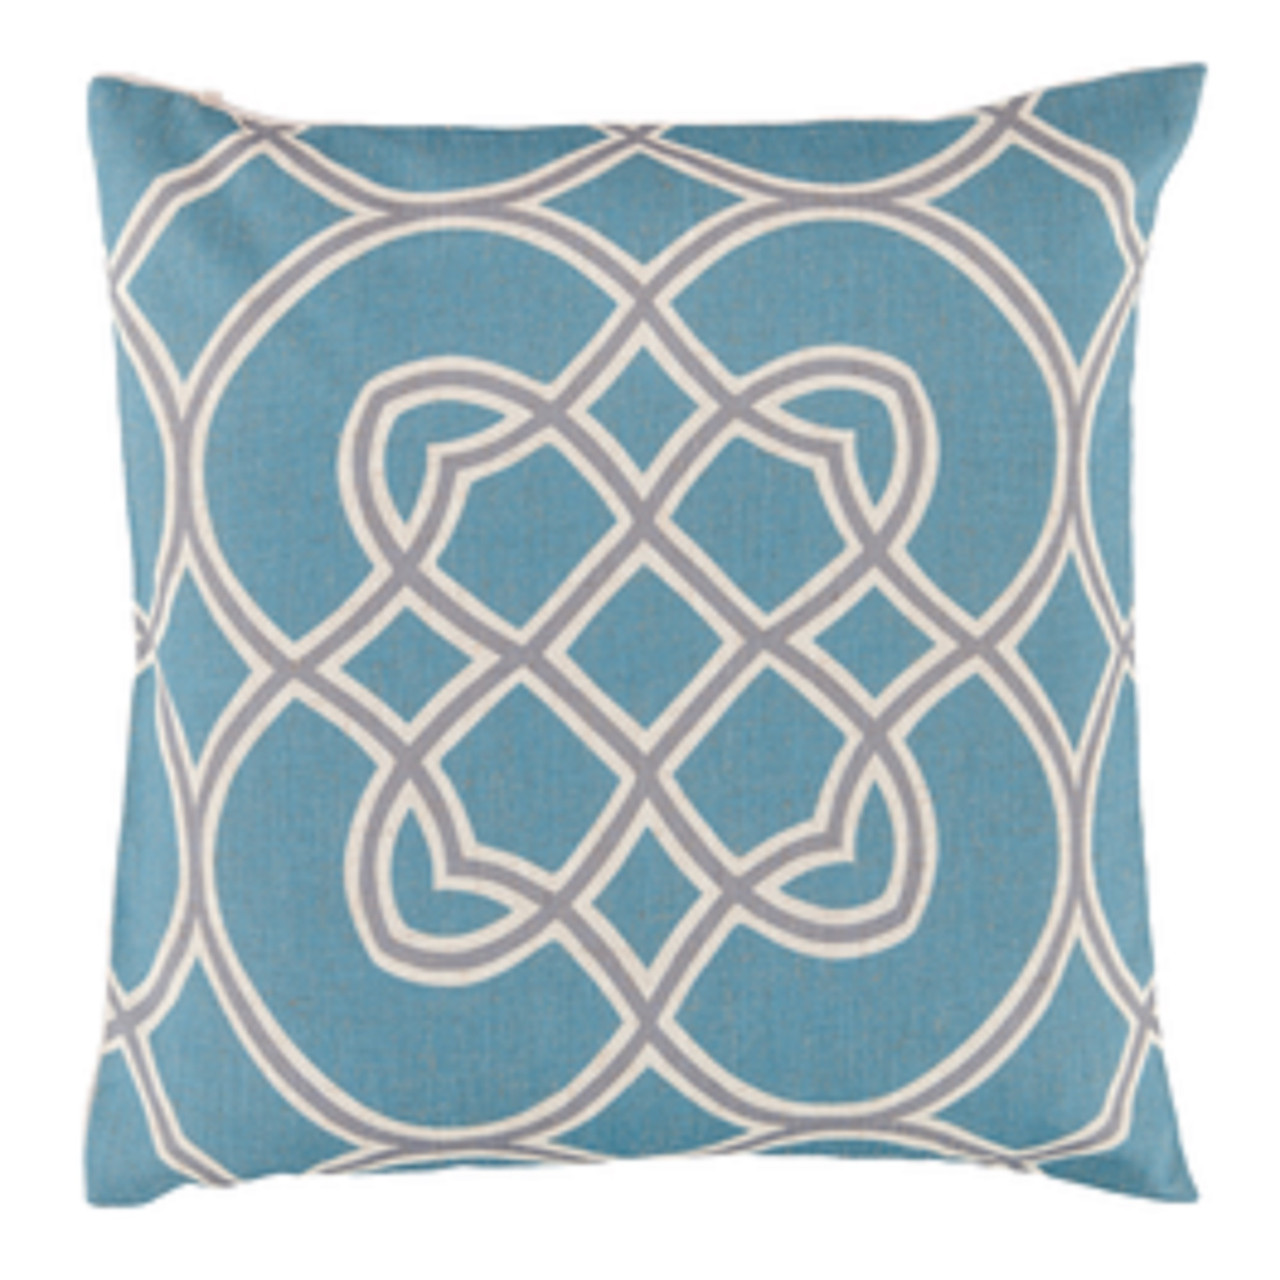 22 Powder Blue Clay Beige Ivory White Trellis Decorative Square Throw Pillow Down Filler Christmas Central